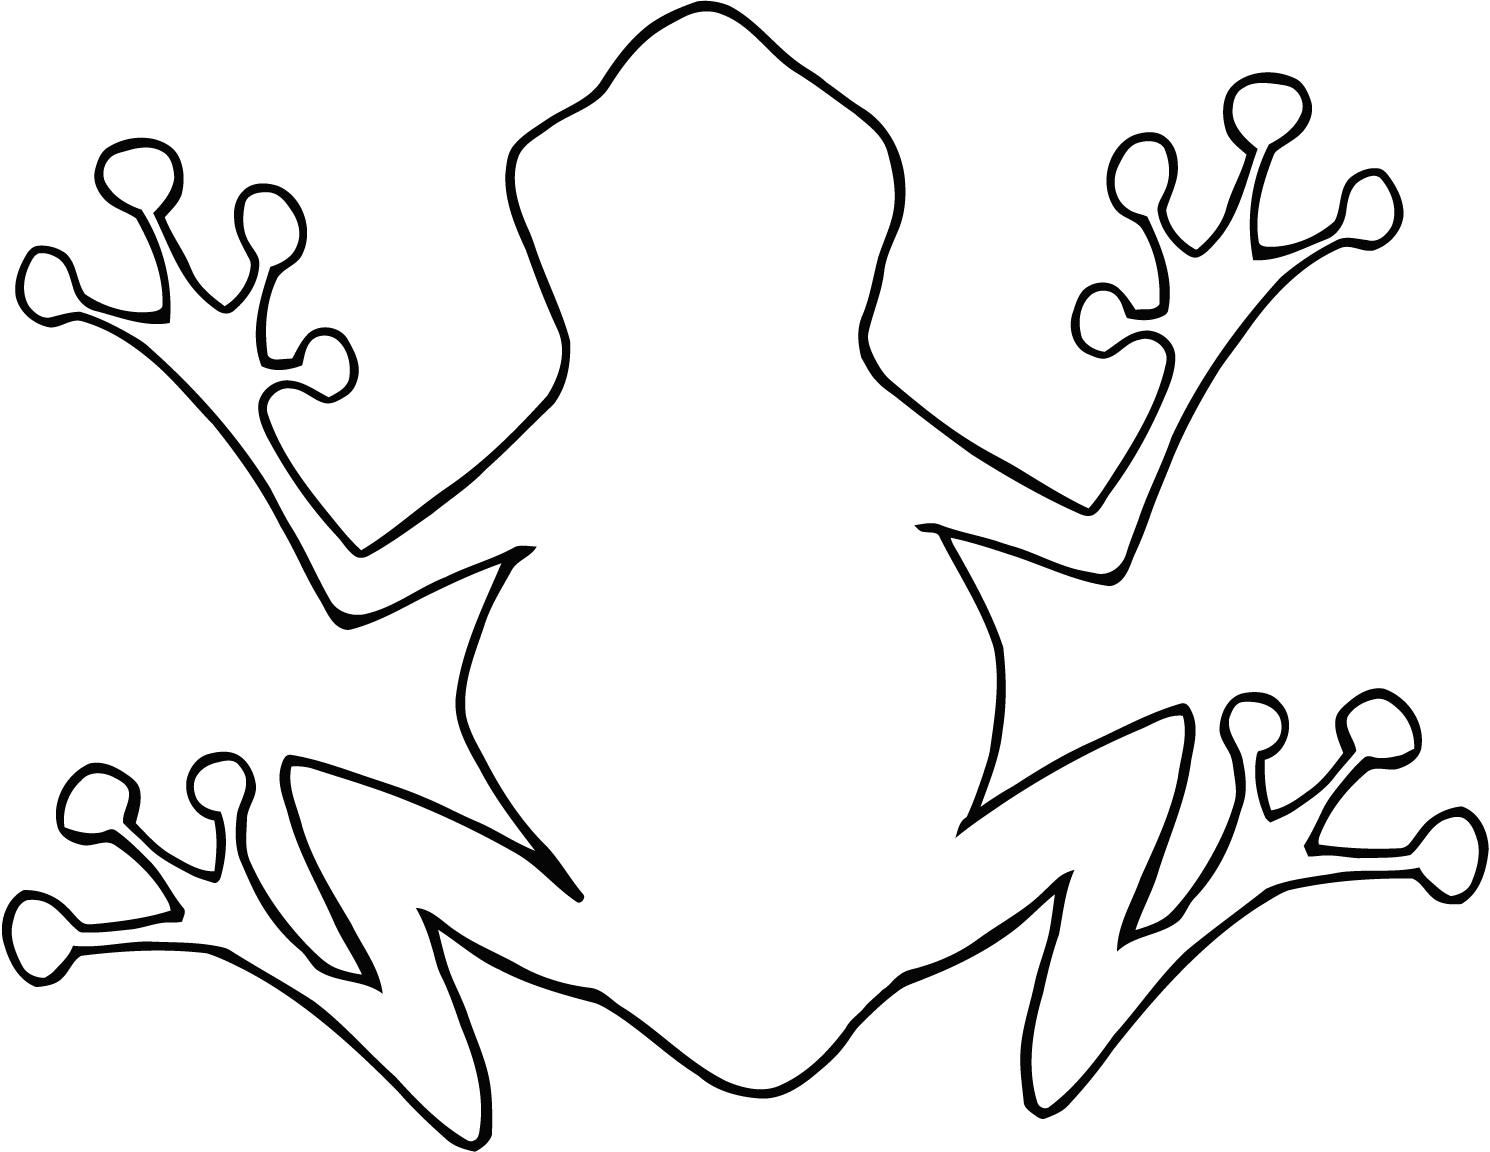 Free coloring pages red eyed tree frog - Tree Frog Outline Clipart Panda Free Clipart Images